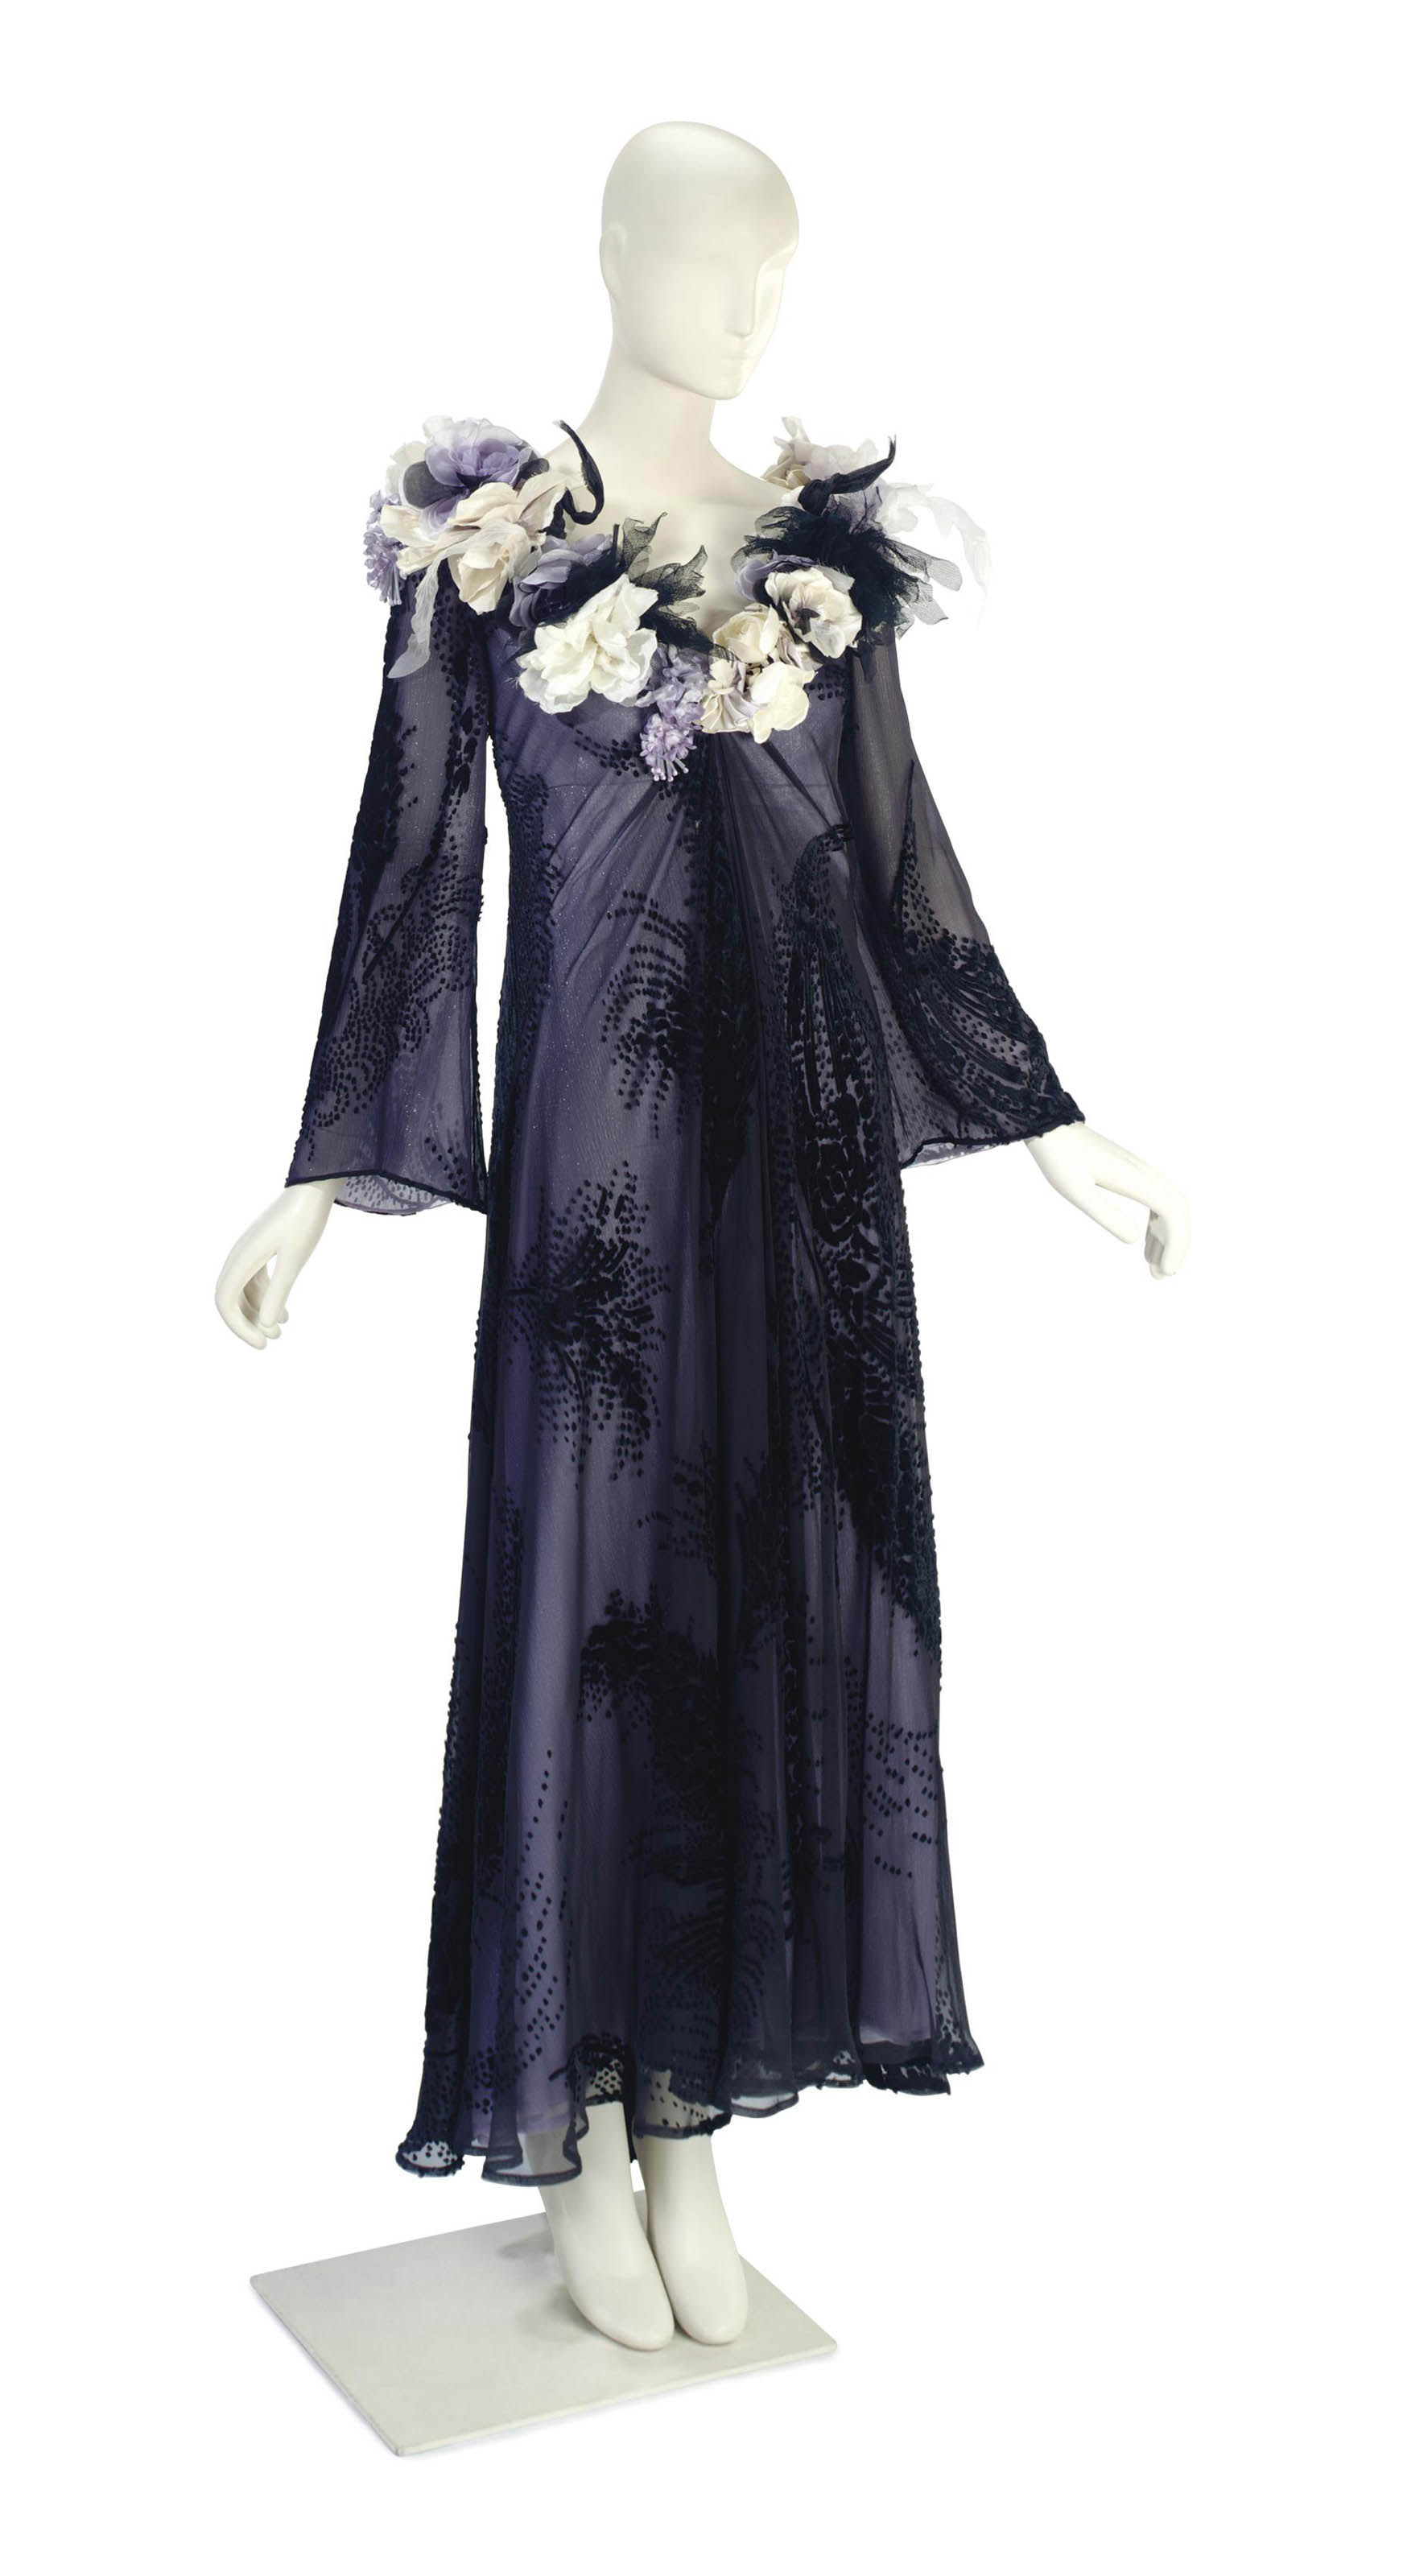 A GIANFRANCO FERRÉ EVENING GOWN OF BLACK DEVORÈ VELVET